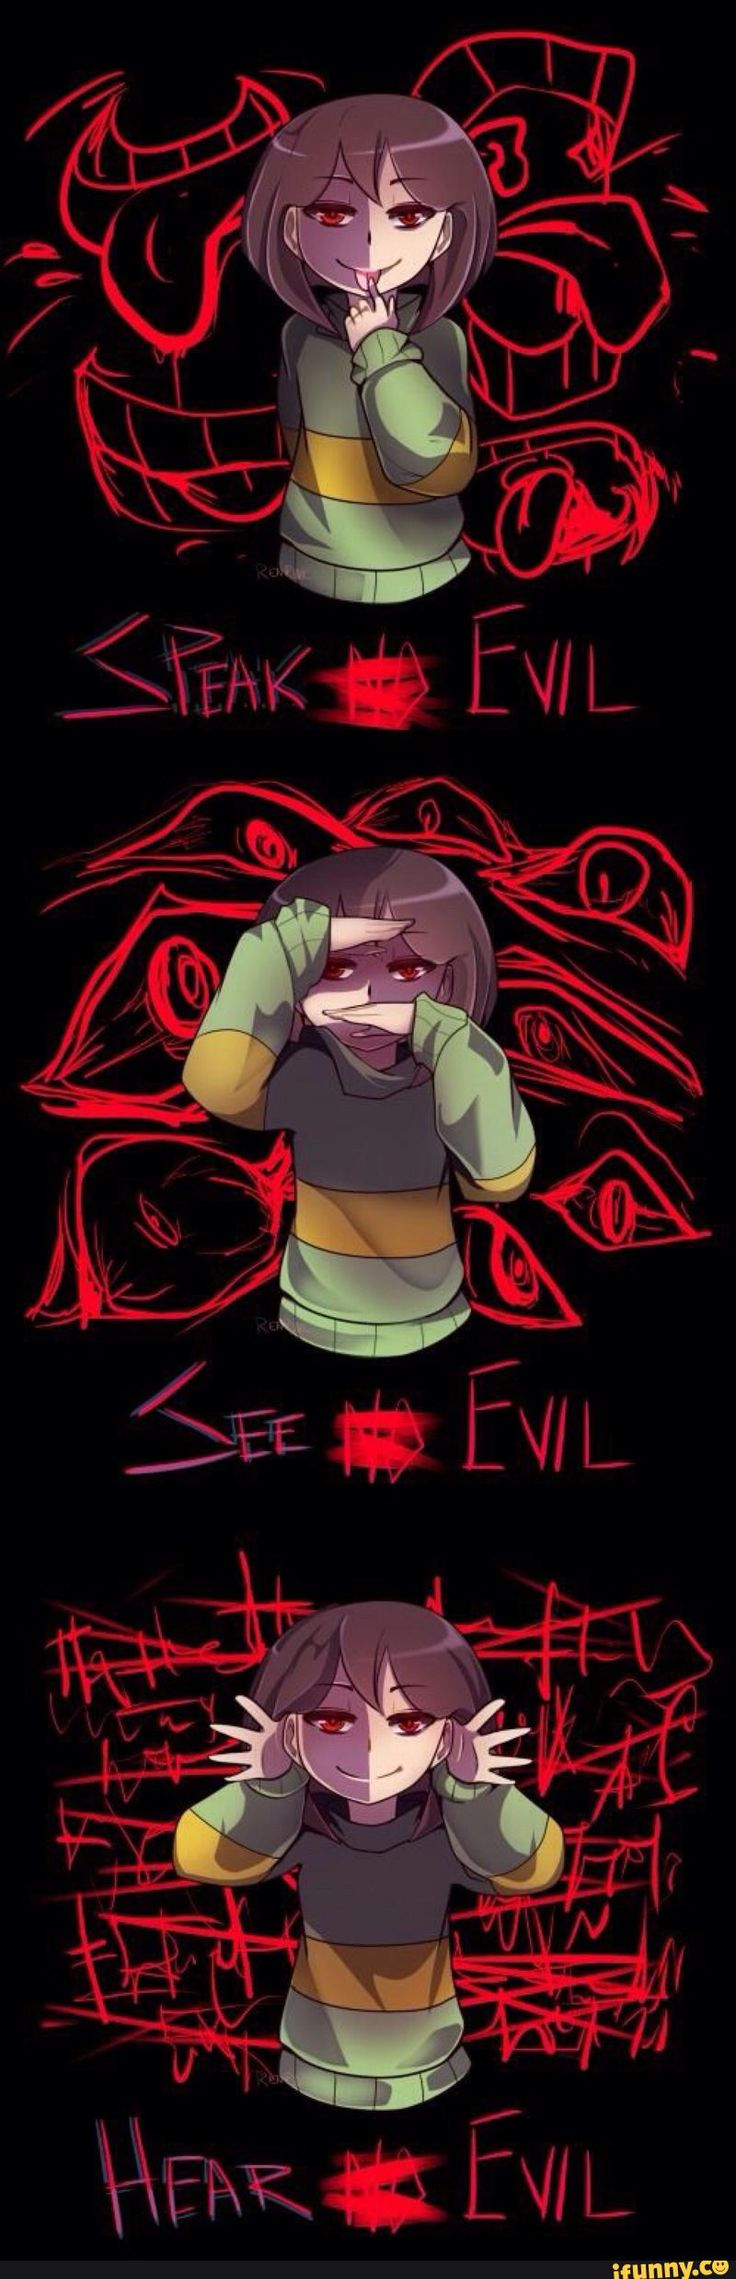 The only reason I pining this is cause Chara reminds me of me people say I'm a whole different evil